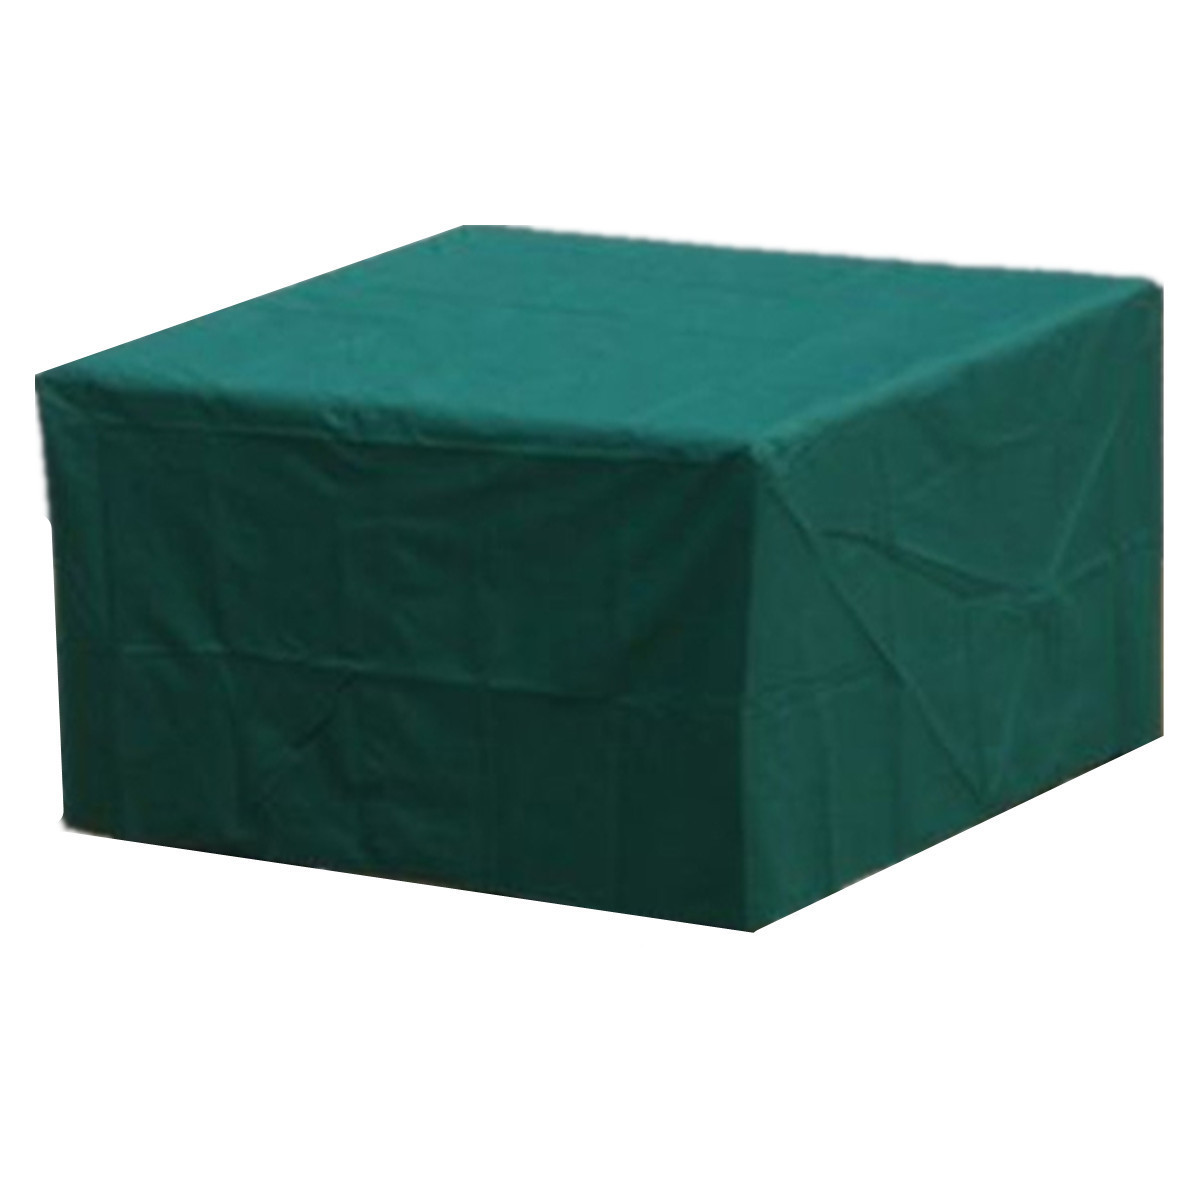 210x193x97cm Garden Outdoor Furniture Waterproof Breathable Dust Cover Table Shelter Woven Polyethylene